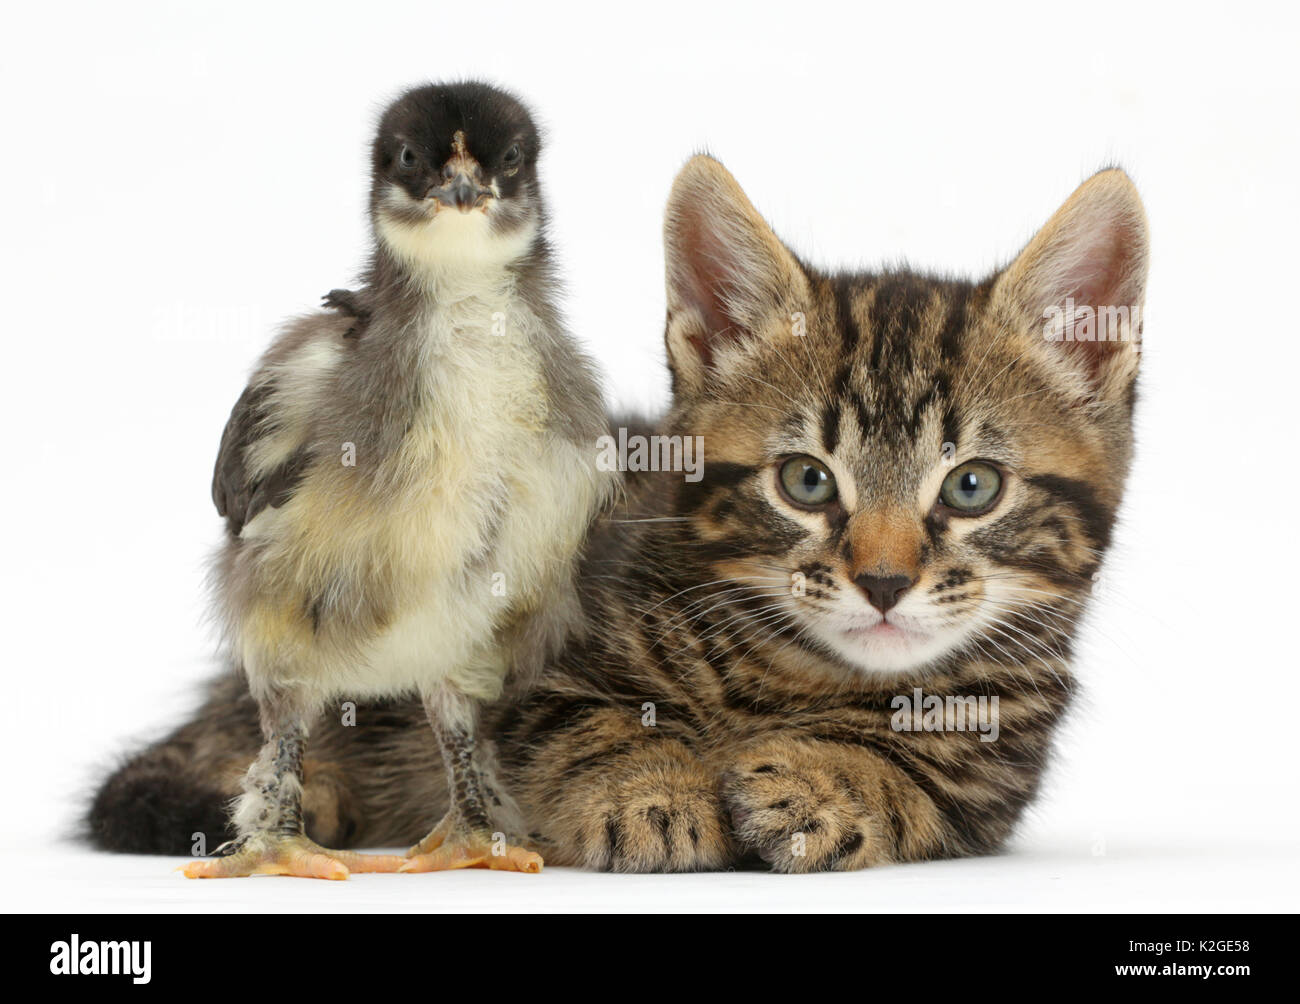 Tabby kitten, Smudge, 7 weeks, with a domestic hen chick. - Stock Image